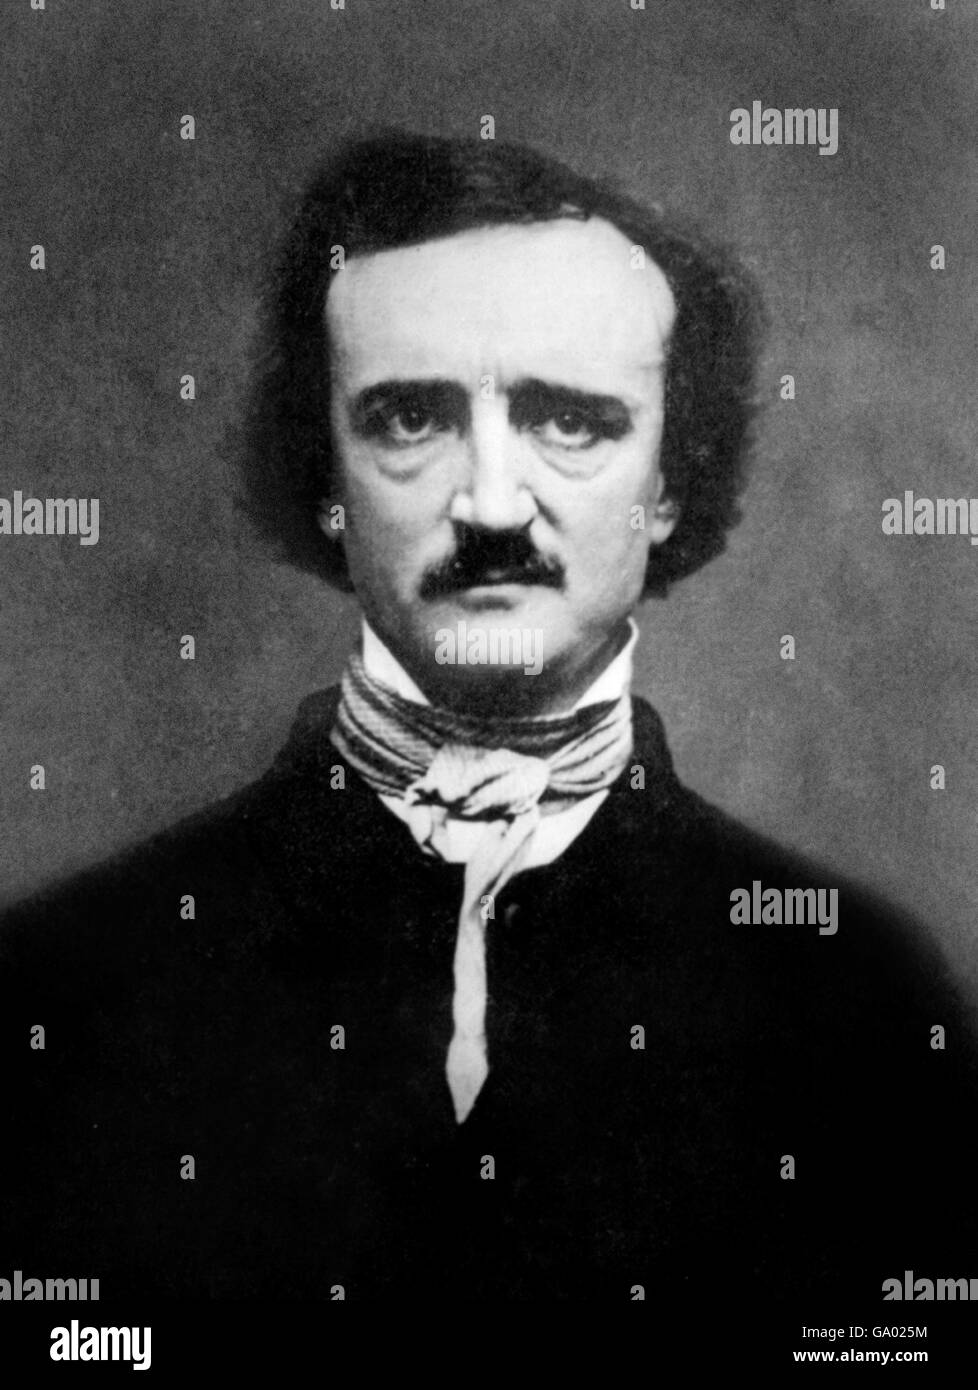 Edgar Allan Poe. Portrait of the American writer, Edgar Allan Poe (born Edgar Poe; 1809-1849). From a daguerrotype - Stock Image